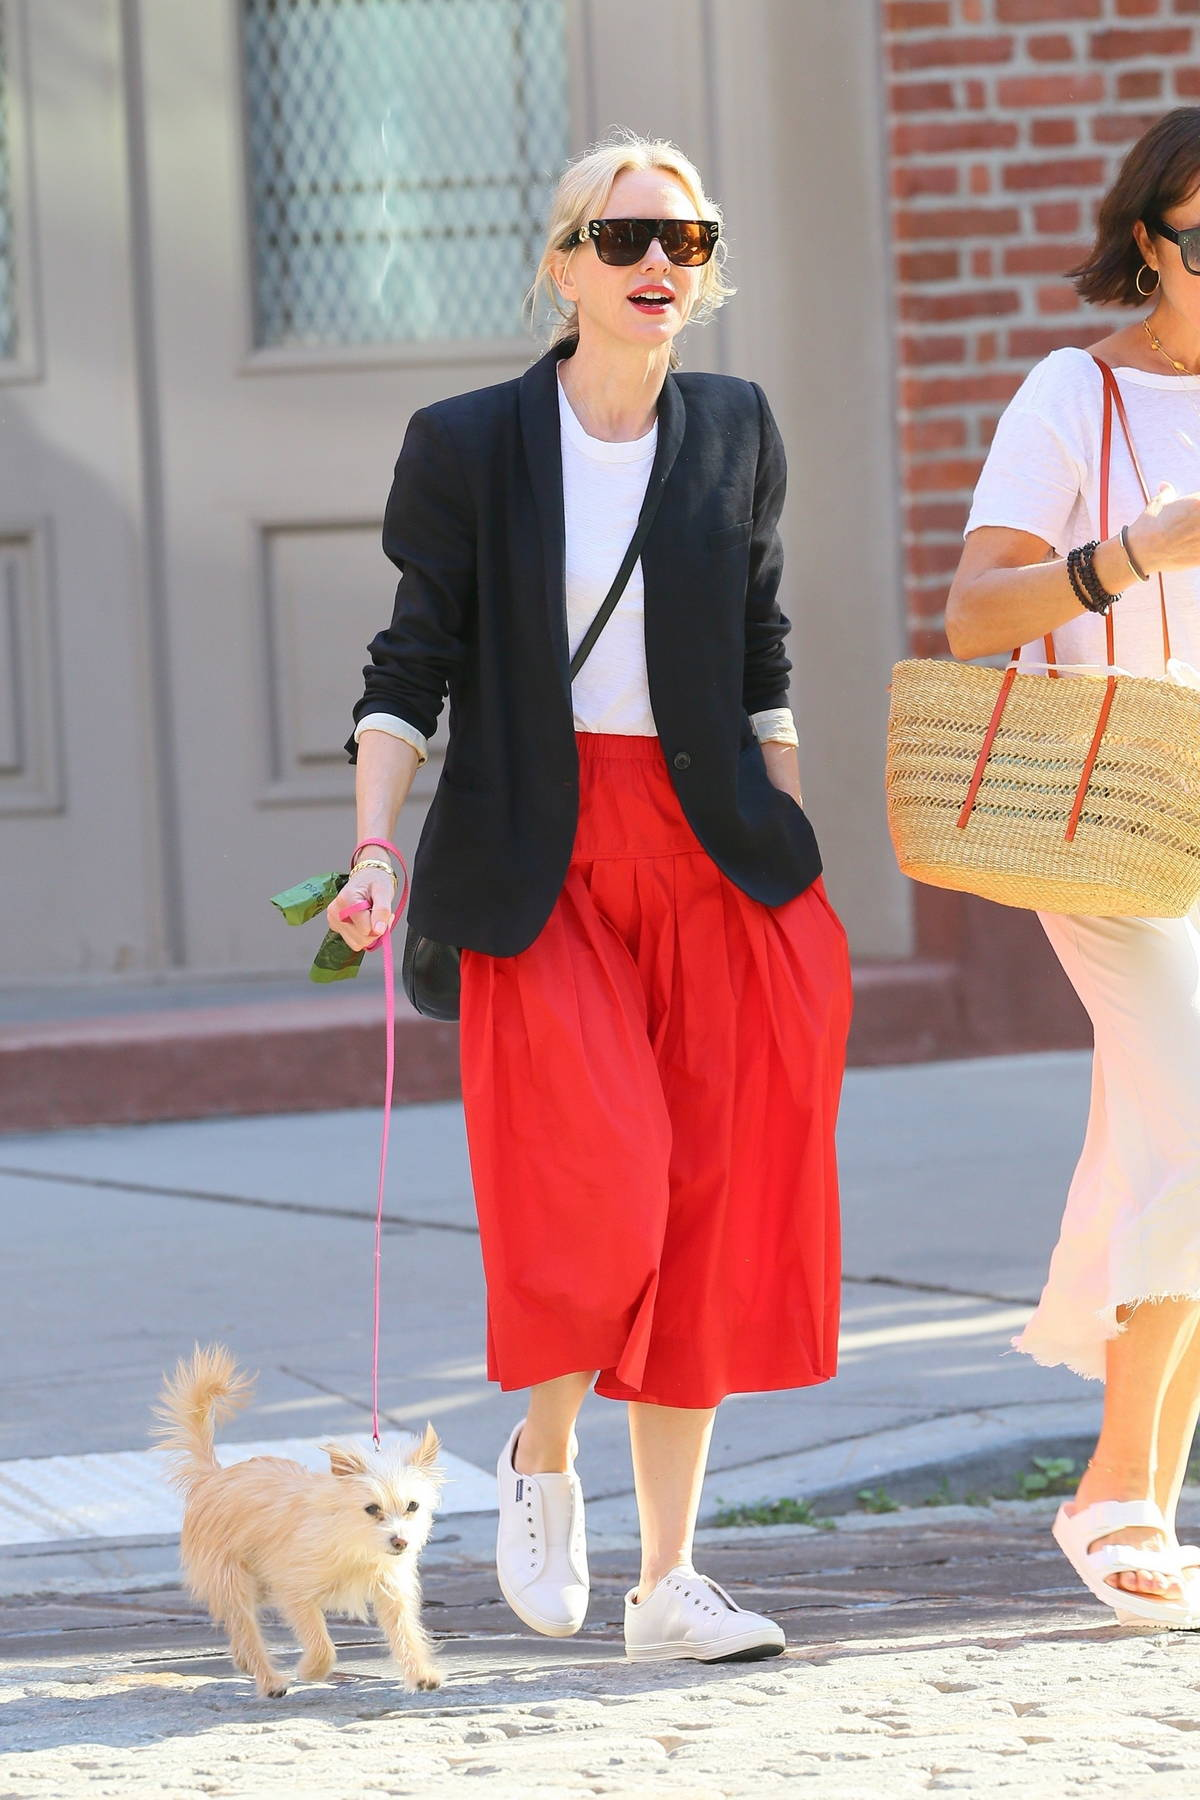 Naomi Watts looks fantastic in a red skirt as she walks her dog in New York City